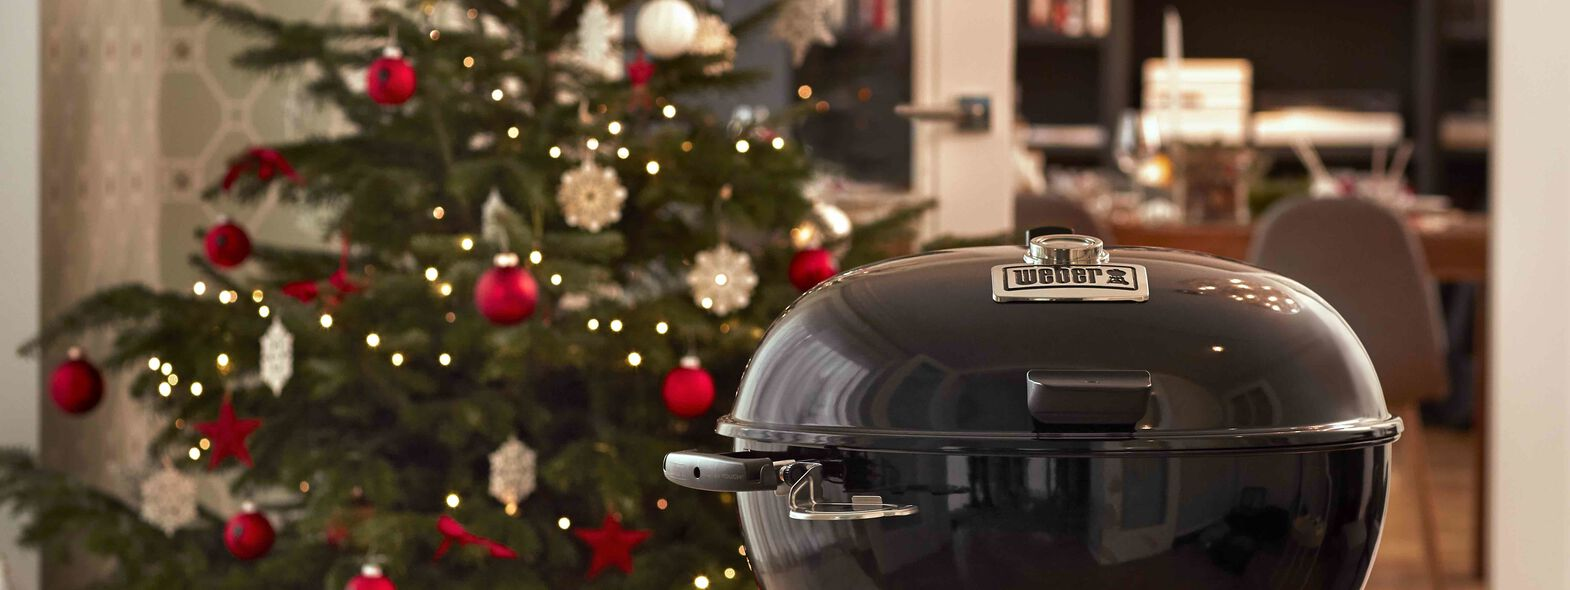 Weber BBQ Night - Merry Grilling